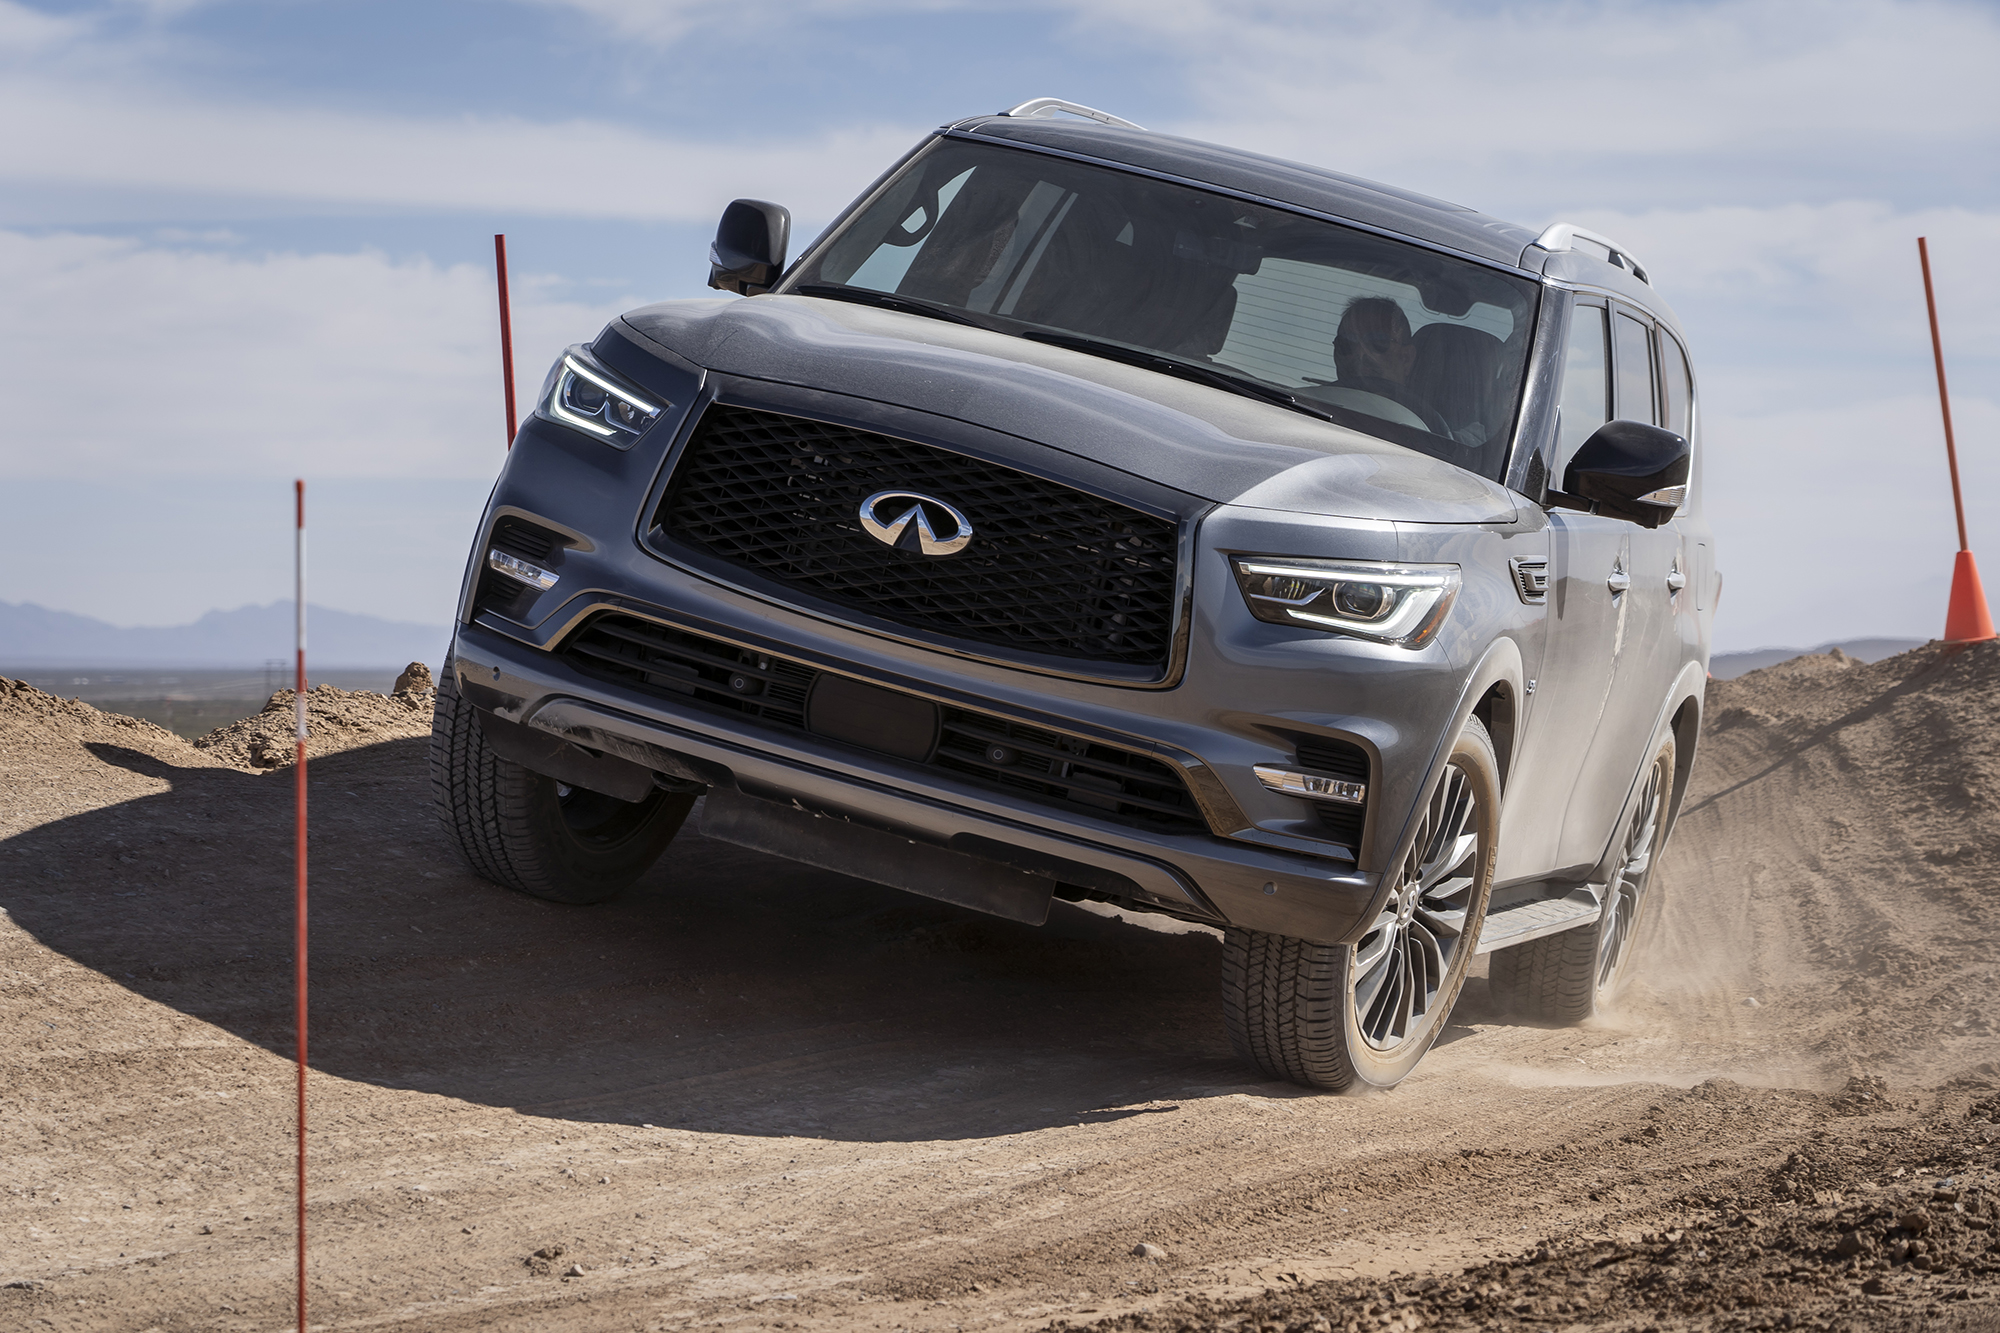 Infiniti QX80: Which Should You Buy, 2019 or 2020?